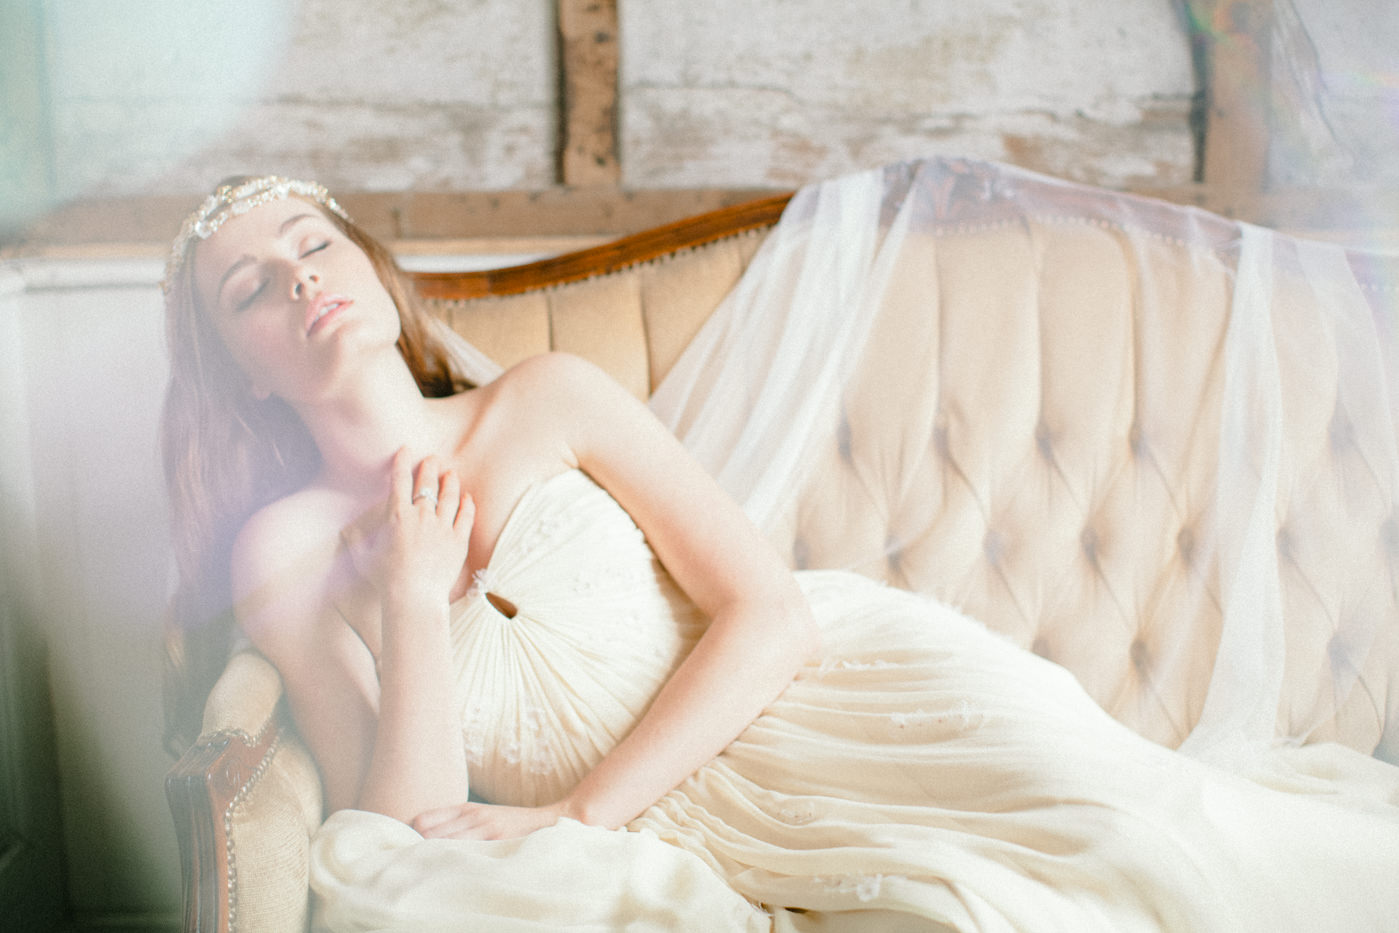 photographer-fashion-wedding-sandraaberg.com-2